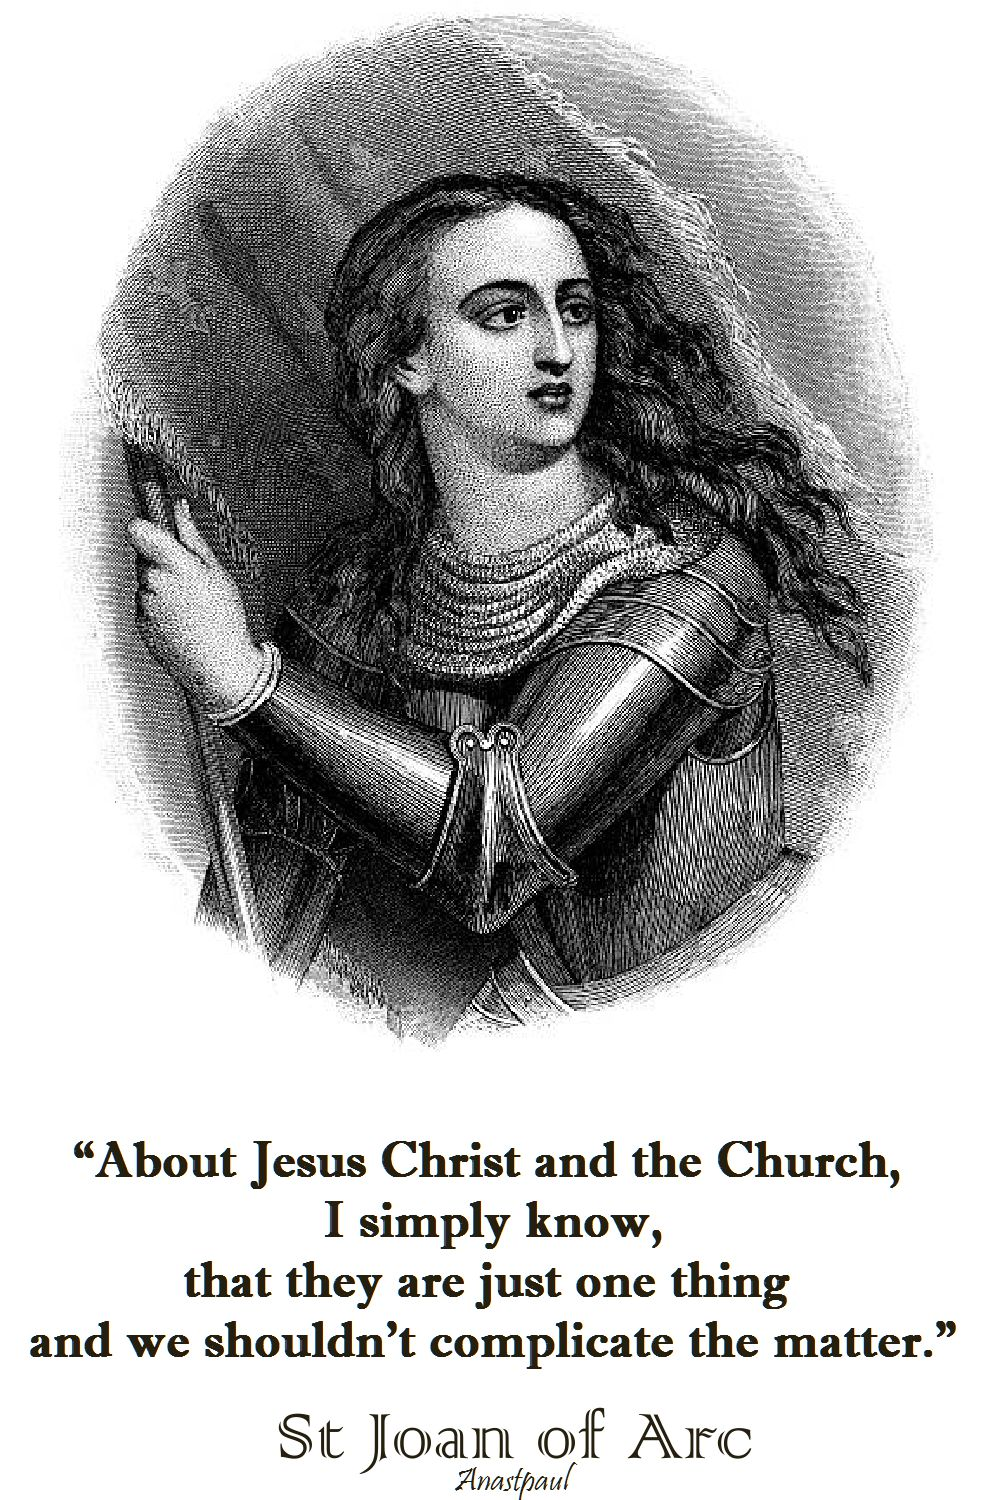 about jesus christ and the church-st joan of arc.jpg